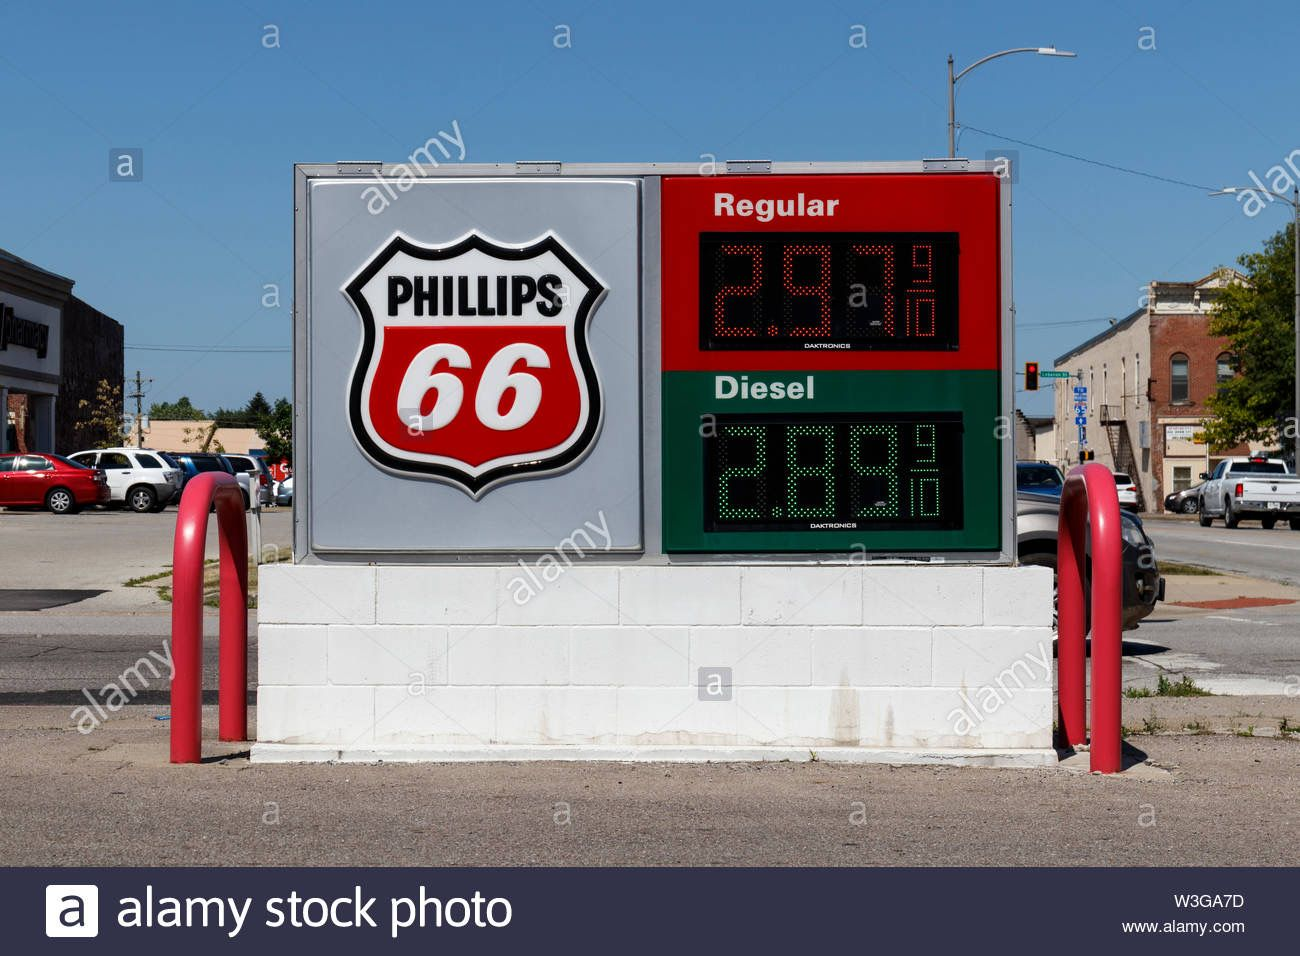 Pin On Phillips 66 Today 2